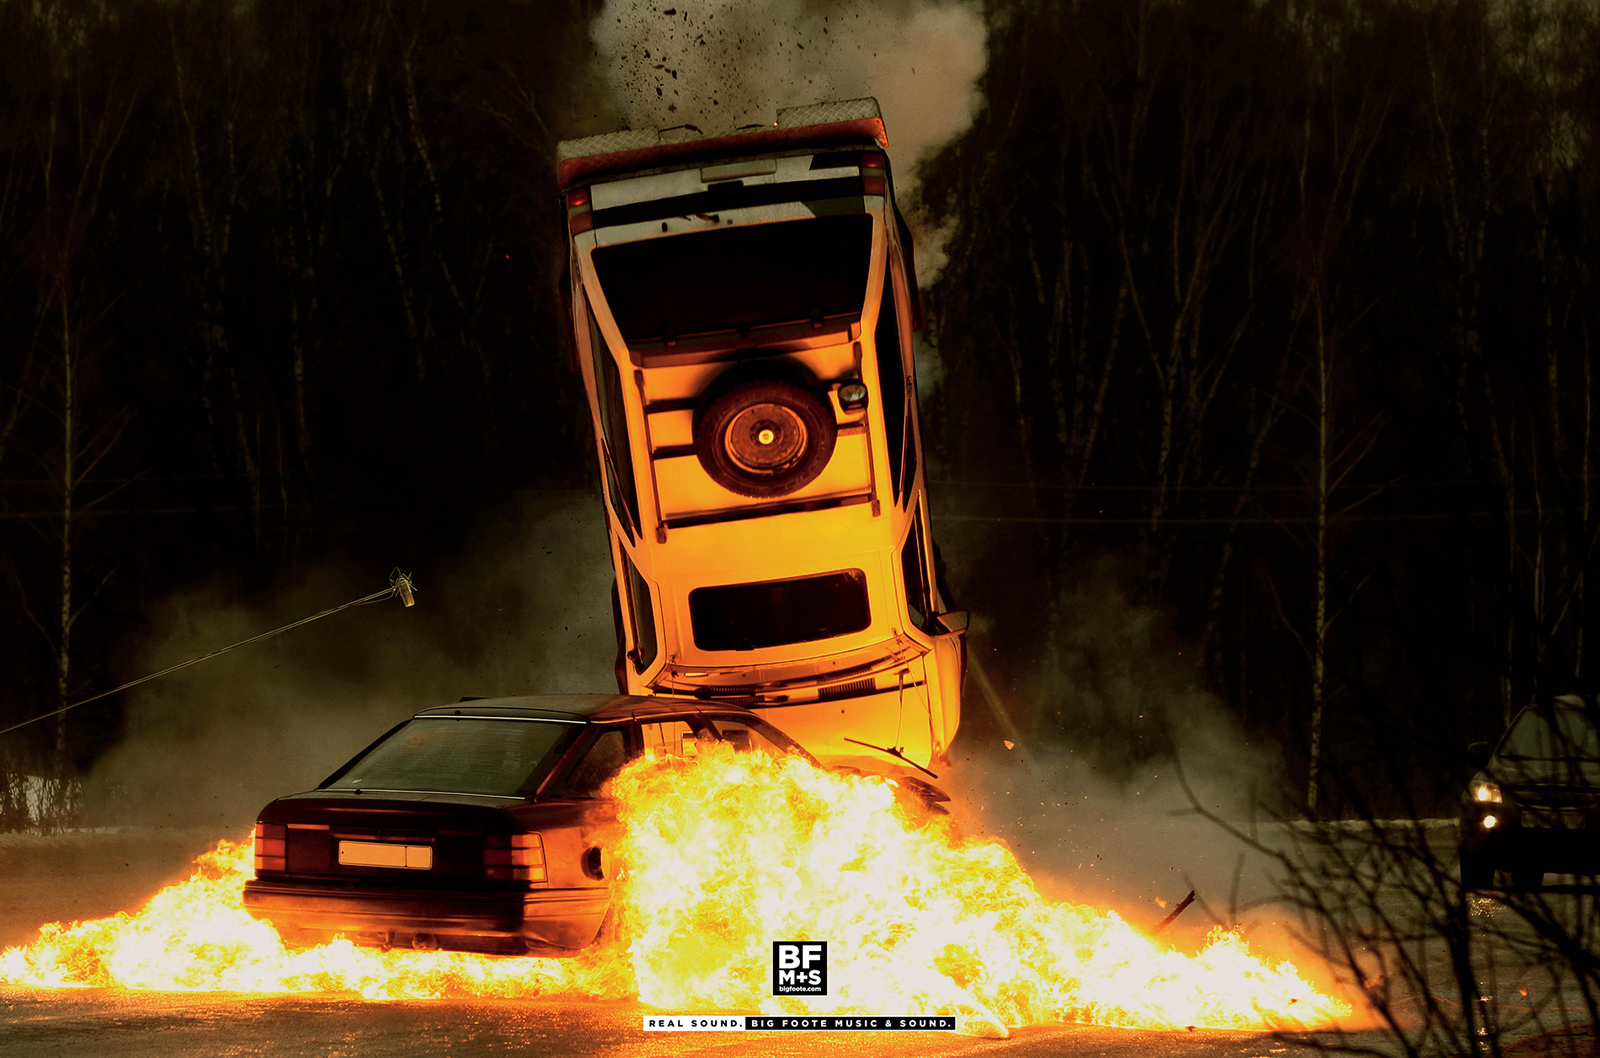 Big Foote Music & Sound Print Advert By BBH: Car Explosion